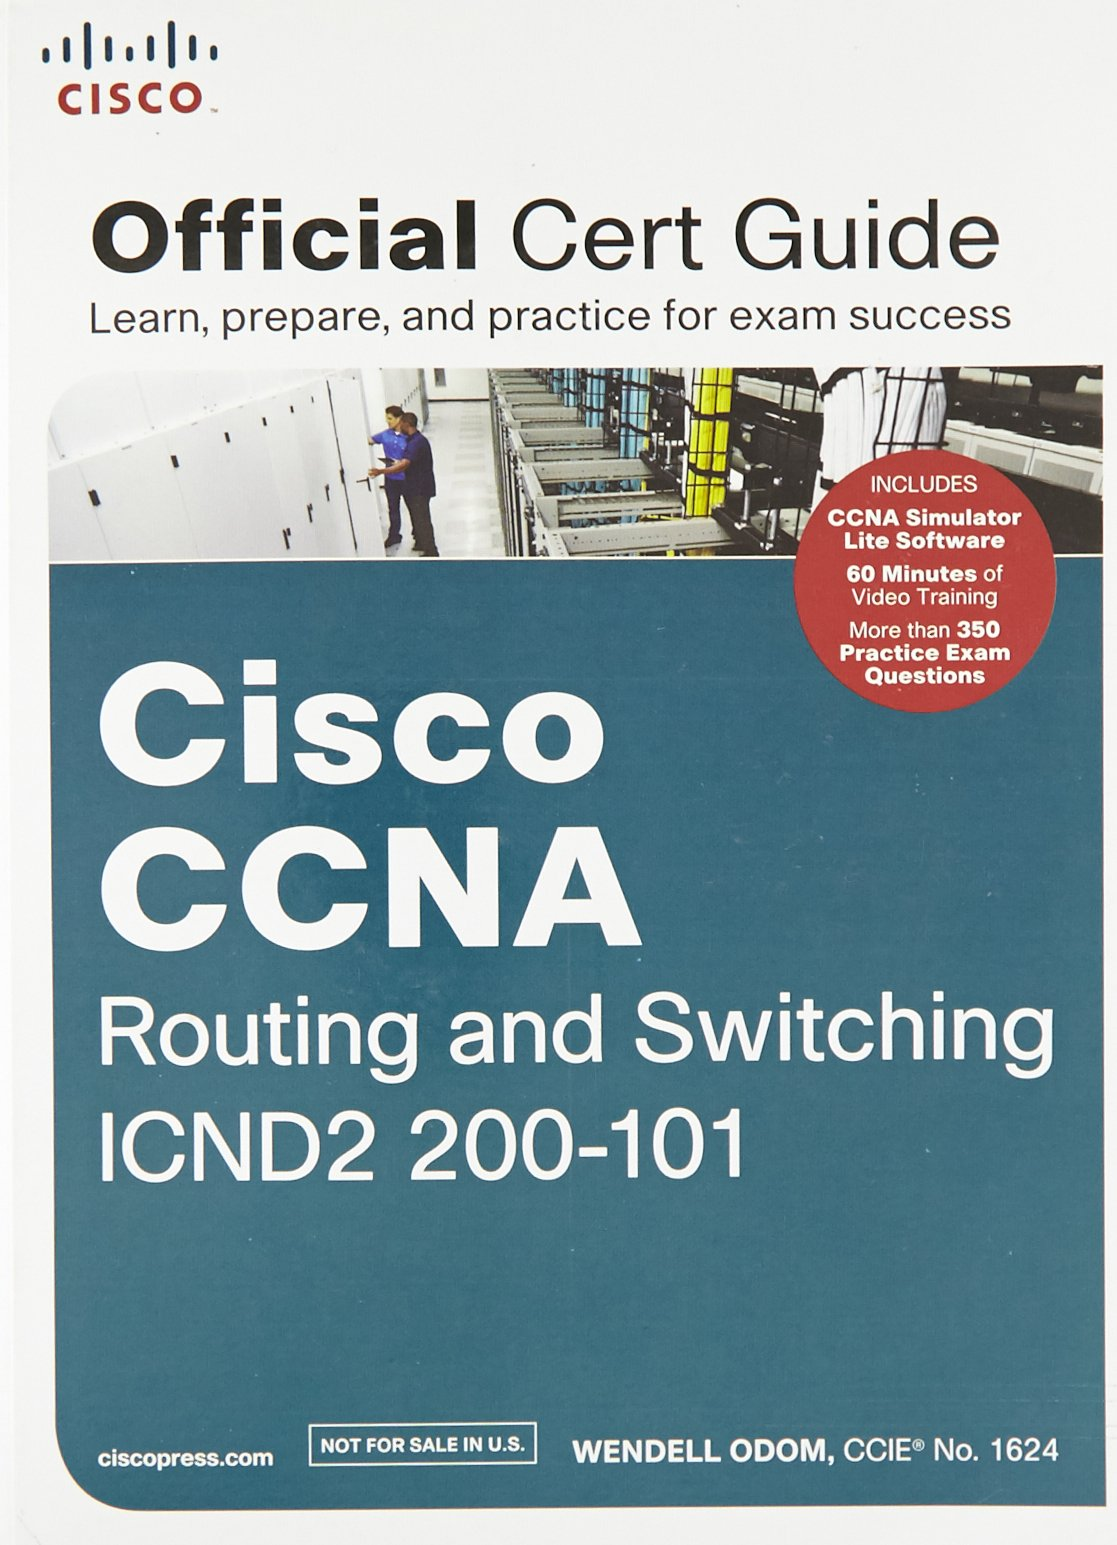 Download Cisco CCNA Routing and Switching ICND2 200-101 Official Cert Guide PDF